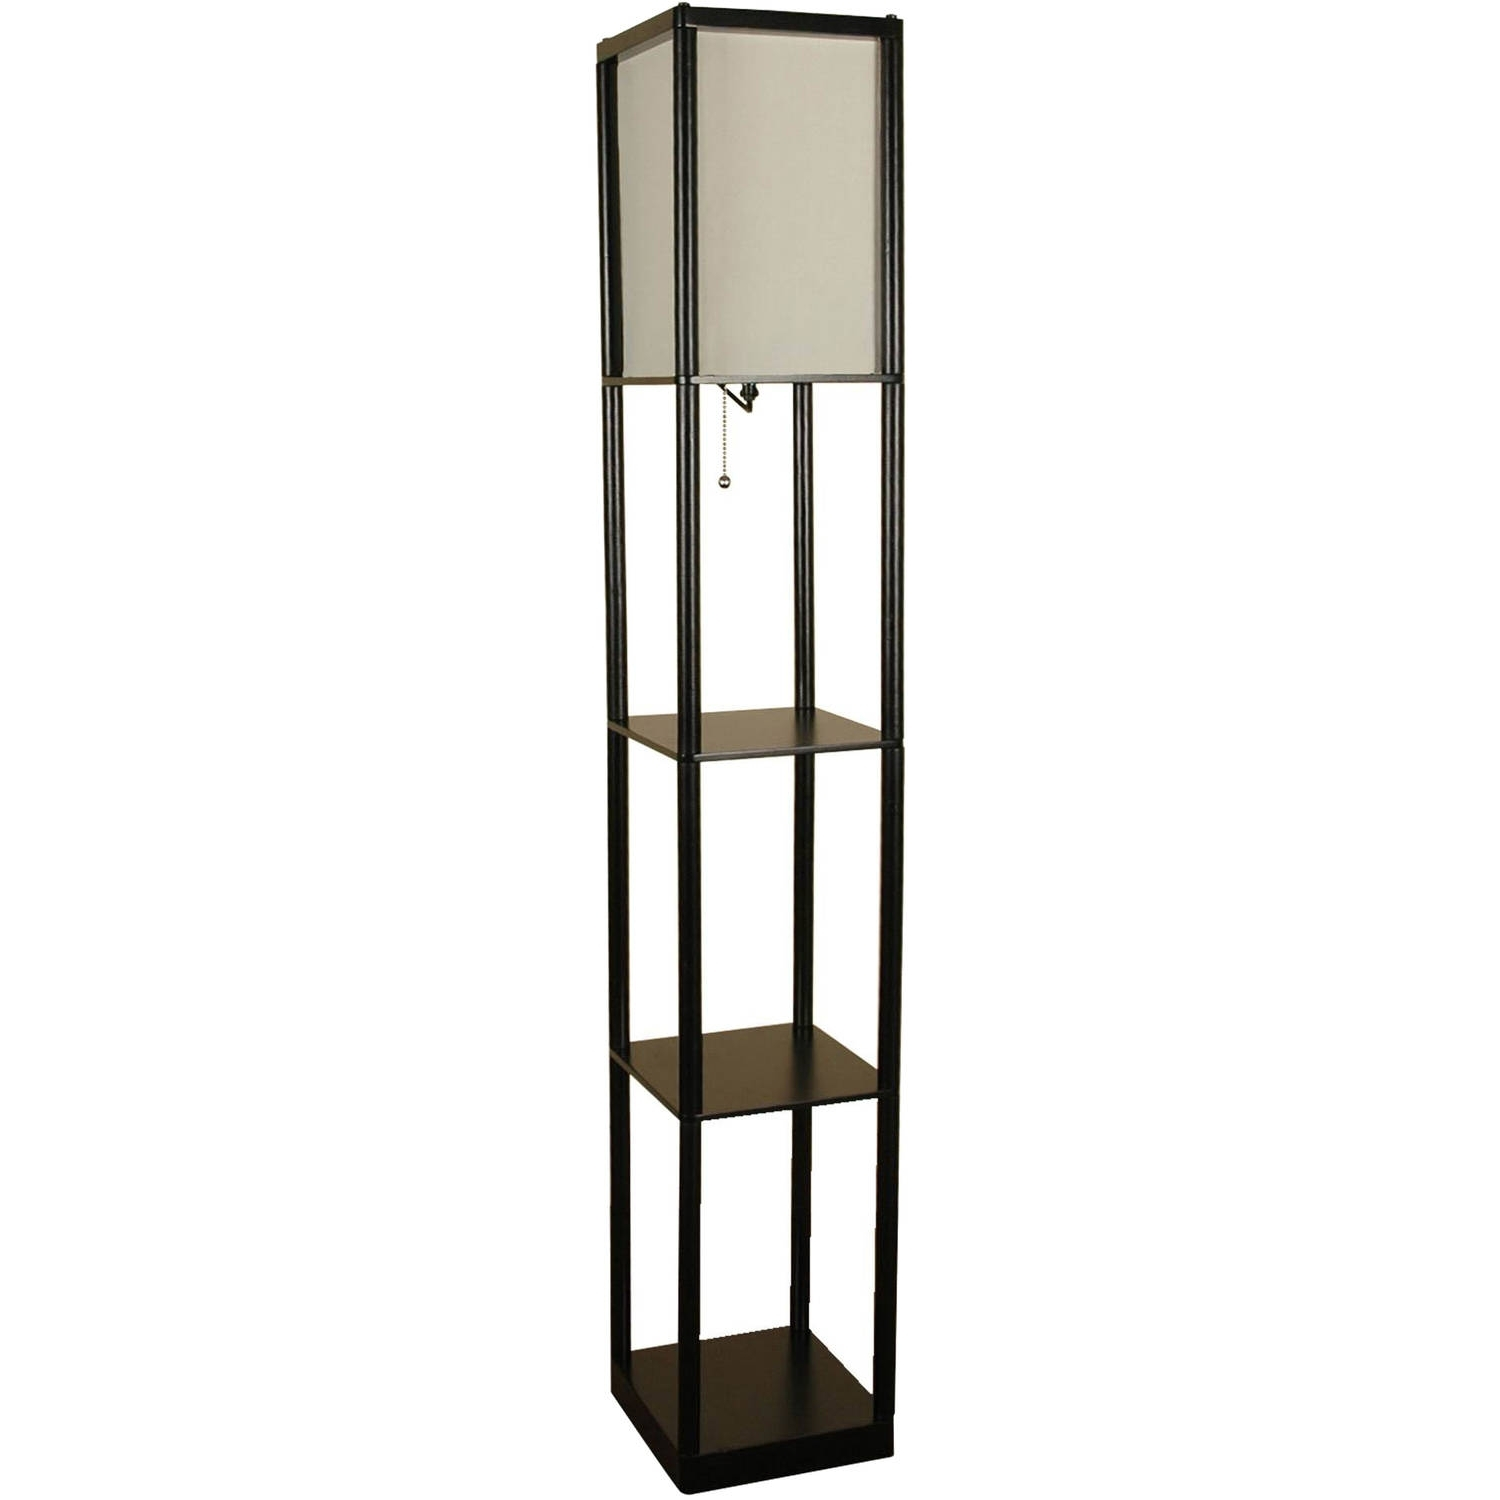 Mainstays Black Shelf Floor Lamp With White Shade On/off Cfl Bulb With Regard To Most Up To Date Walmart Living Room Table Lamps (View 6 of 15)